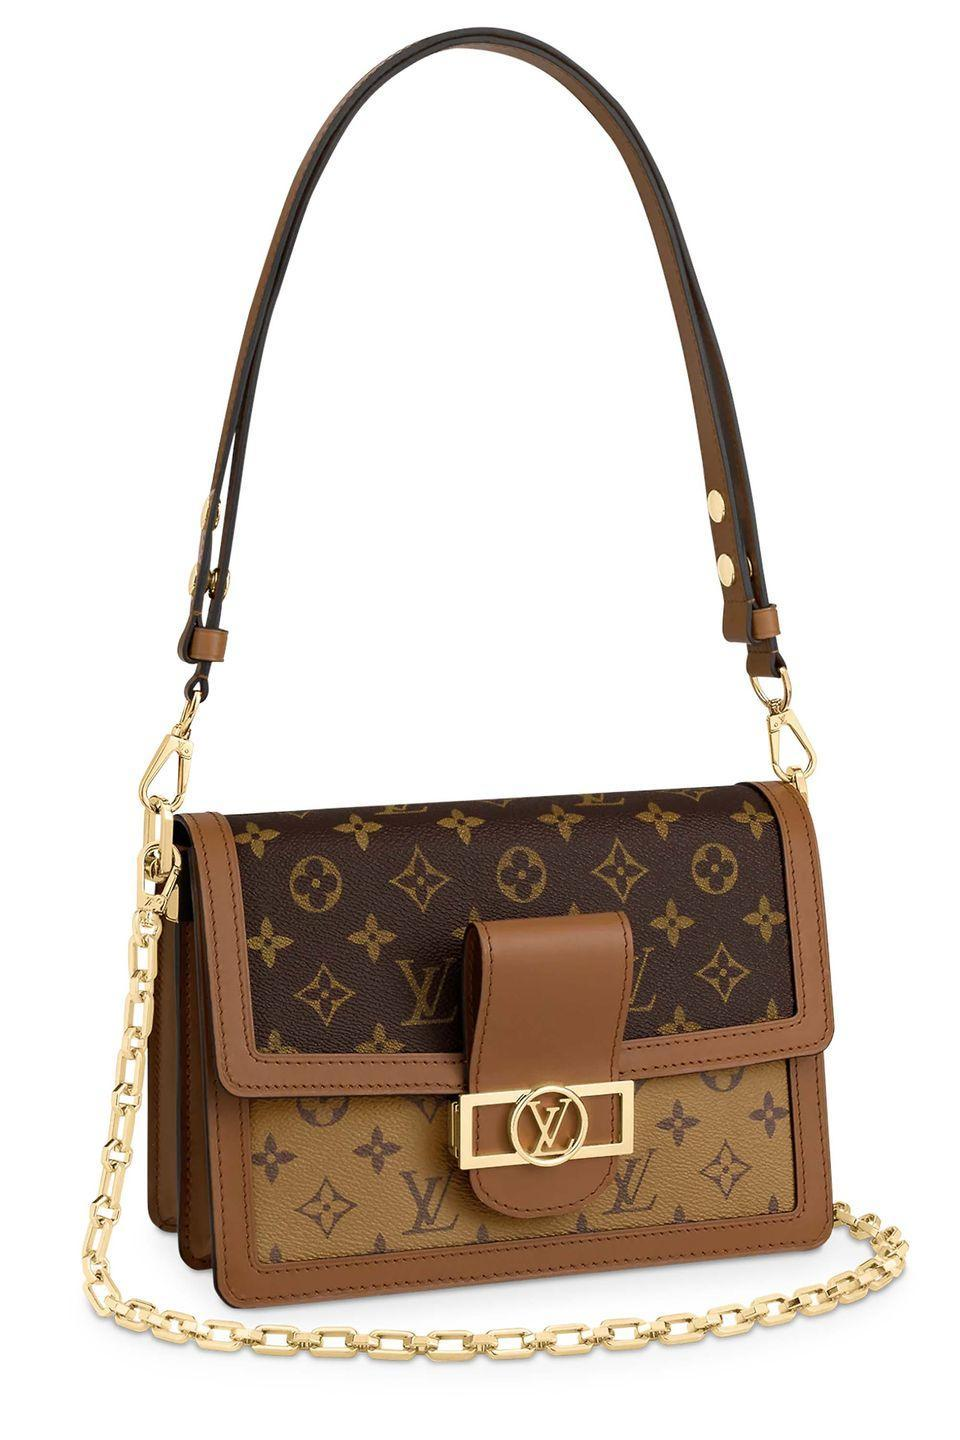 """<p><a class=""""link rapid-noclick-resp"""" href=""""https://uk.louisvuitton.com/eng-gb/products/dauphine-monogram-nvprod1120030v"""" rel=""""nofollow noopener"""" target=""""_blank"""" data-ylk=""""slk:SHOP NOW"""">SHOP NOW</a></p><p>Add some glamour to literally any look with Louis Vuitton's beautiful Dauphine bag, which was first introduced in the house's cruise 2019 collection.</p><p> Leather bucket bag, £2,360, <a href=""""https://uk.louisvuitton.com/eng-gb/products/dauphine-monogram-nvprod1120030v"""" rel=""""nofollow noopener"""" target=""""_blank"""" data-ylk=""""slk:Louis Vuitton"""" class=""""link rapid-noclick-resp"""">Louis Vuitton</a><br></p>"""